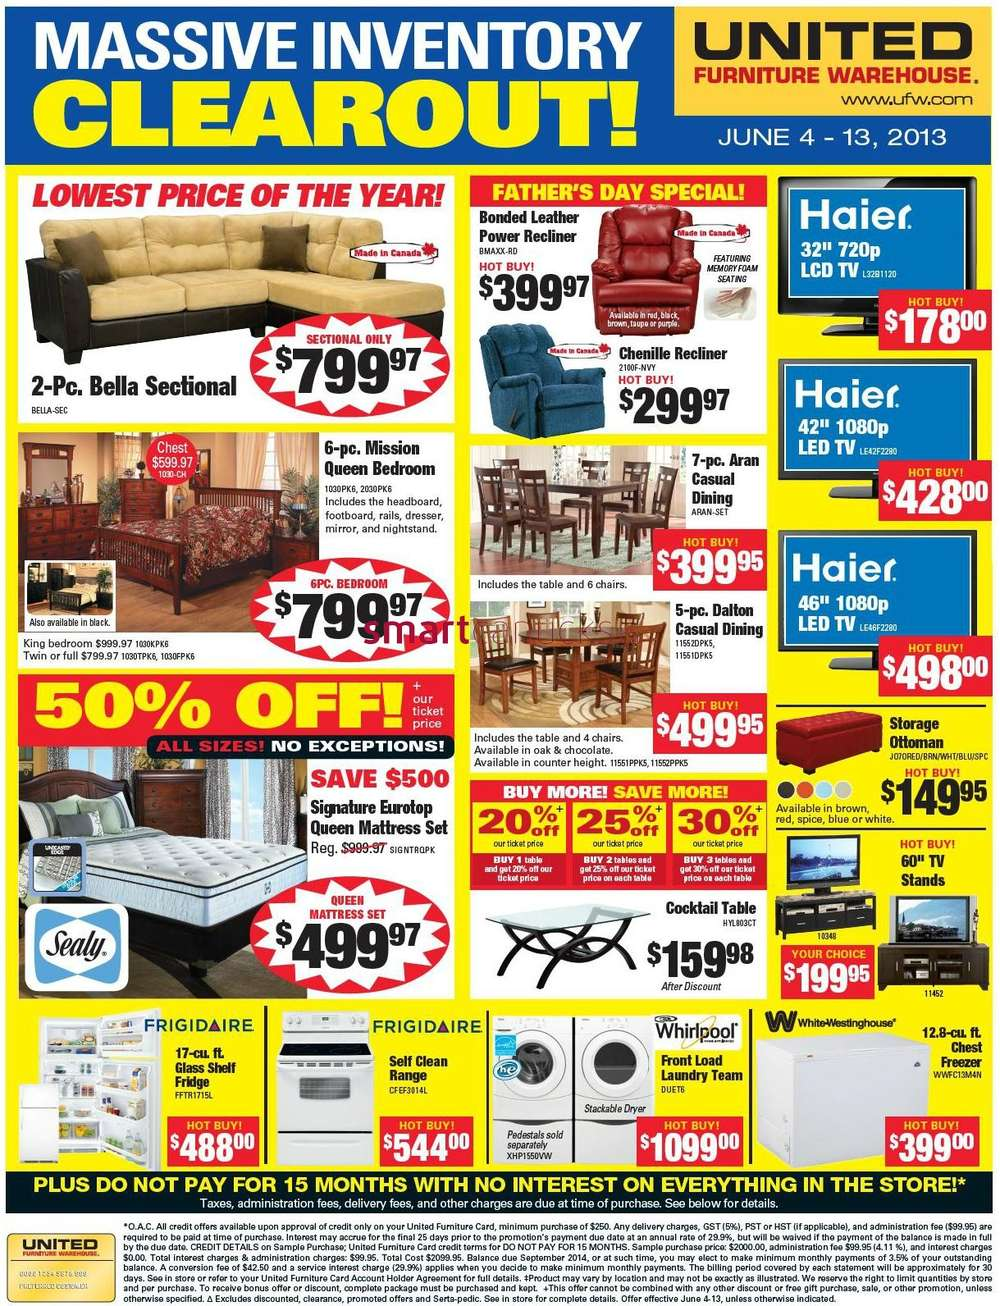 United furniture warehouse flyer jun 4 to 13 for A furniture warehouse